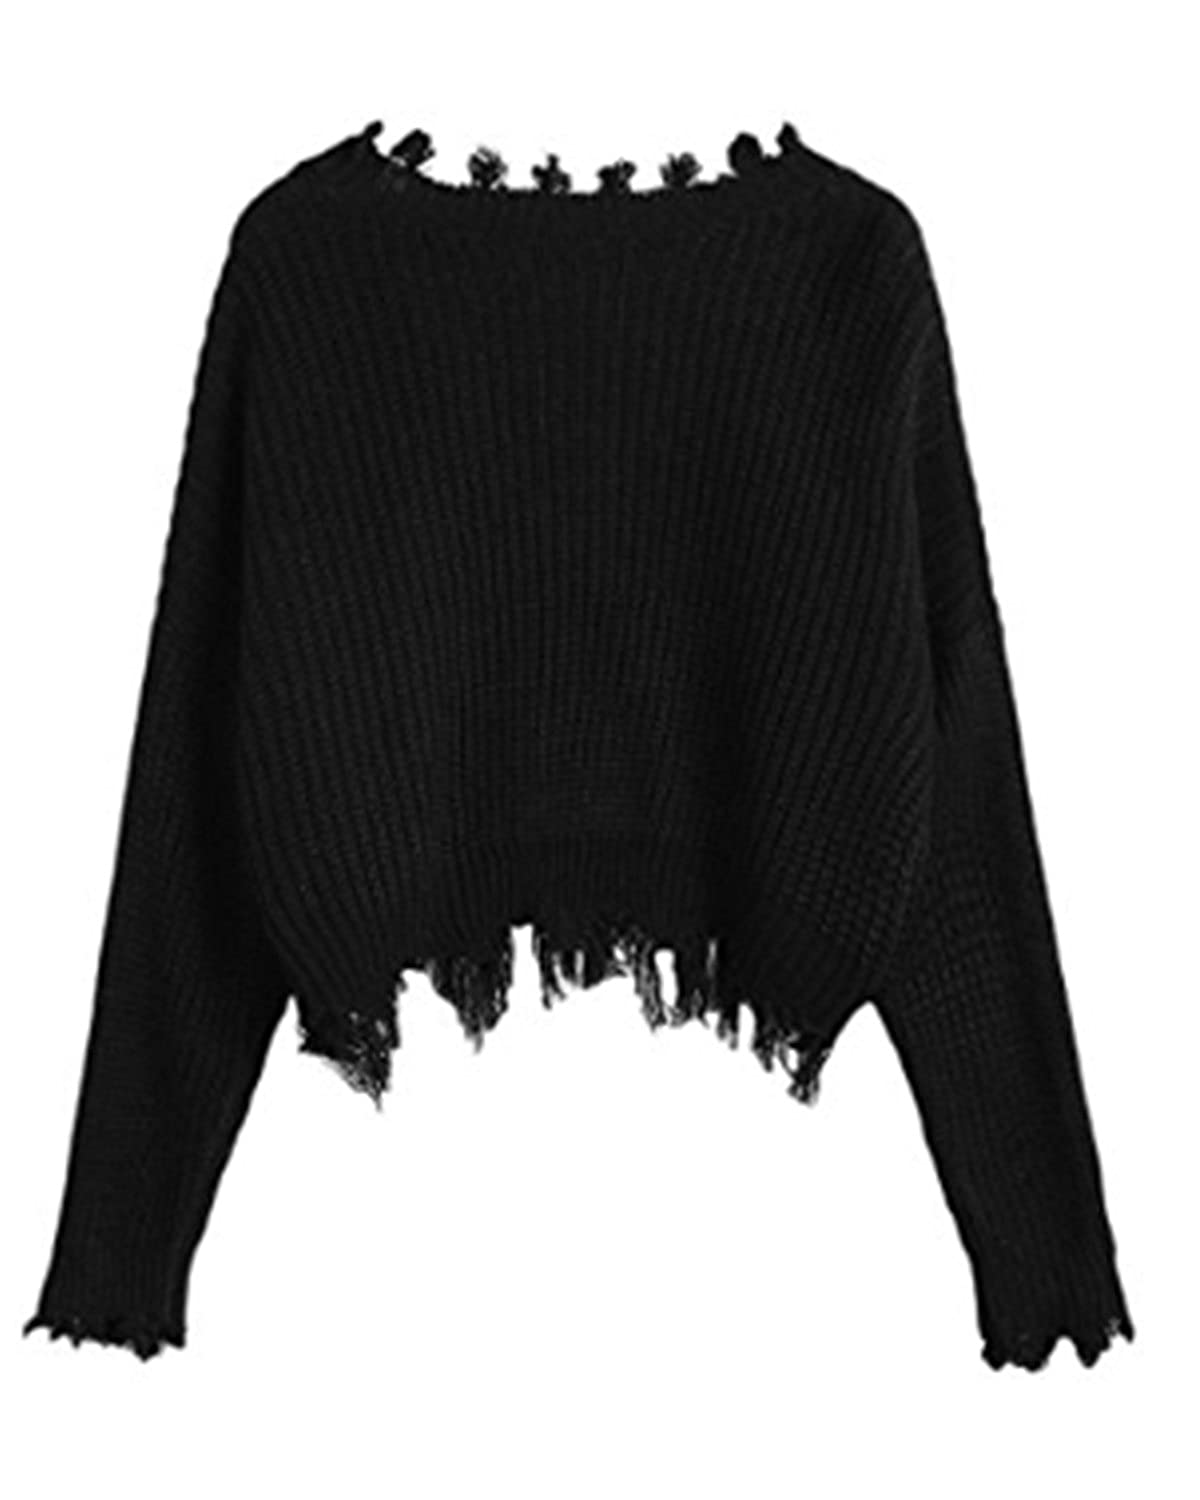 19cabd6273aa7 ZAFUL Women s Loose Long Sleeve V-Neck Ripped Pullover Knitted Crop Top  Sweater(Black) at Amazon Women s Clothing store